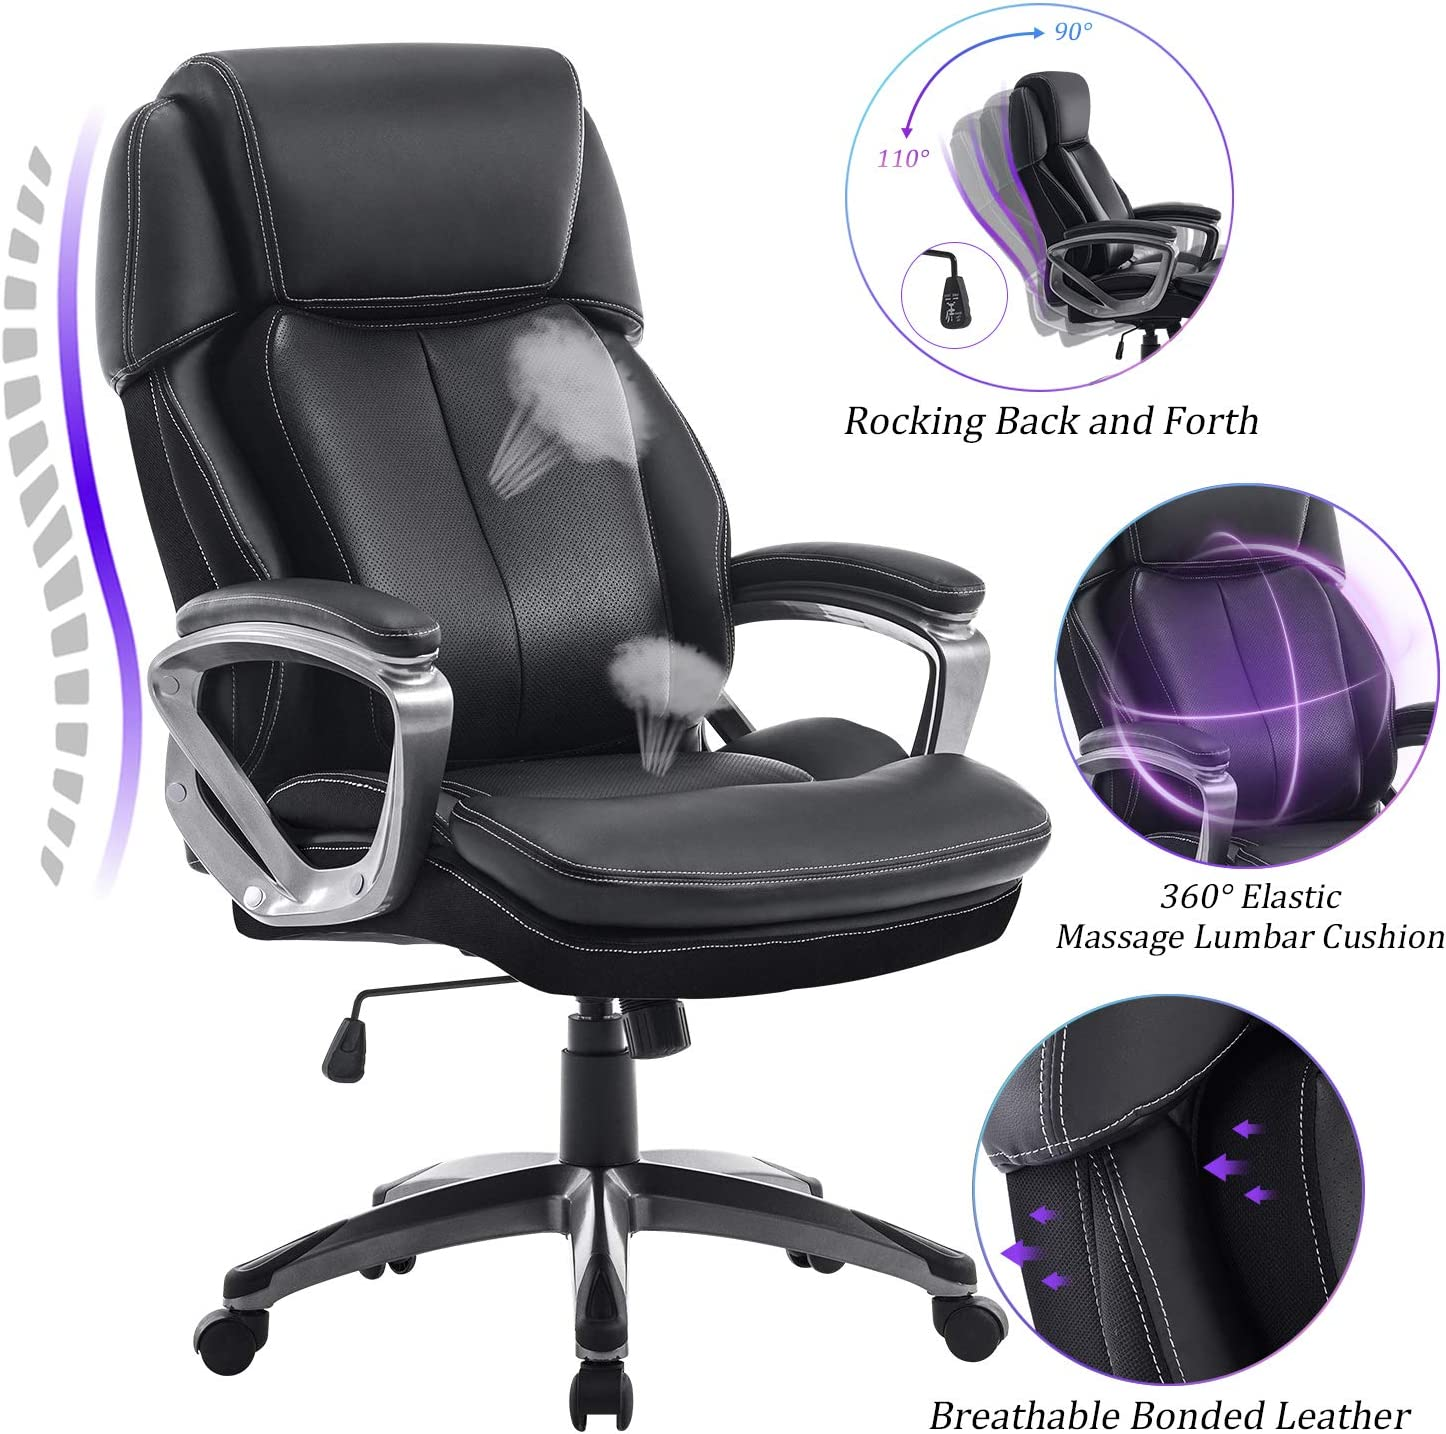 Black REFICCER Multifunctional Office Chair 360/°Movable Lumbar Support and Adjustable Tilt Angle High Back Bonded Leather Ergonomic Executive Computer Desk Chair Swivel Task Chair